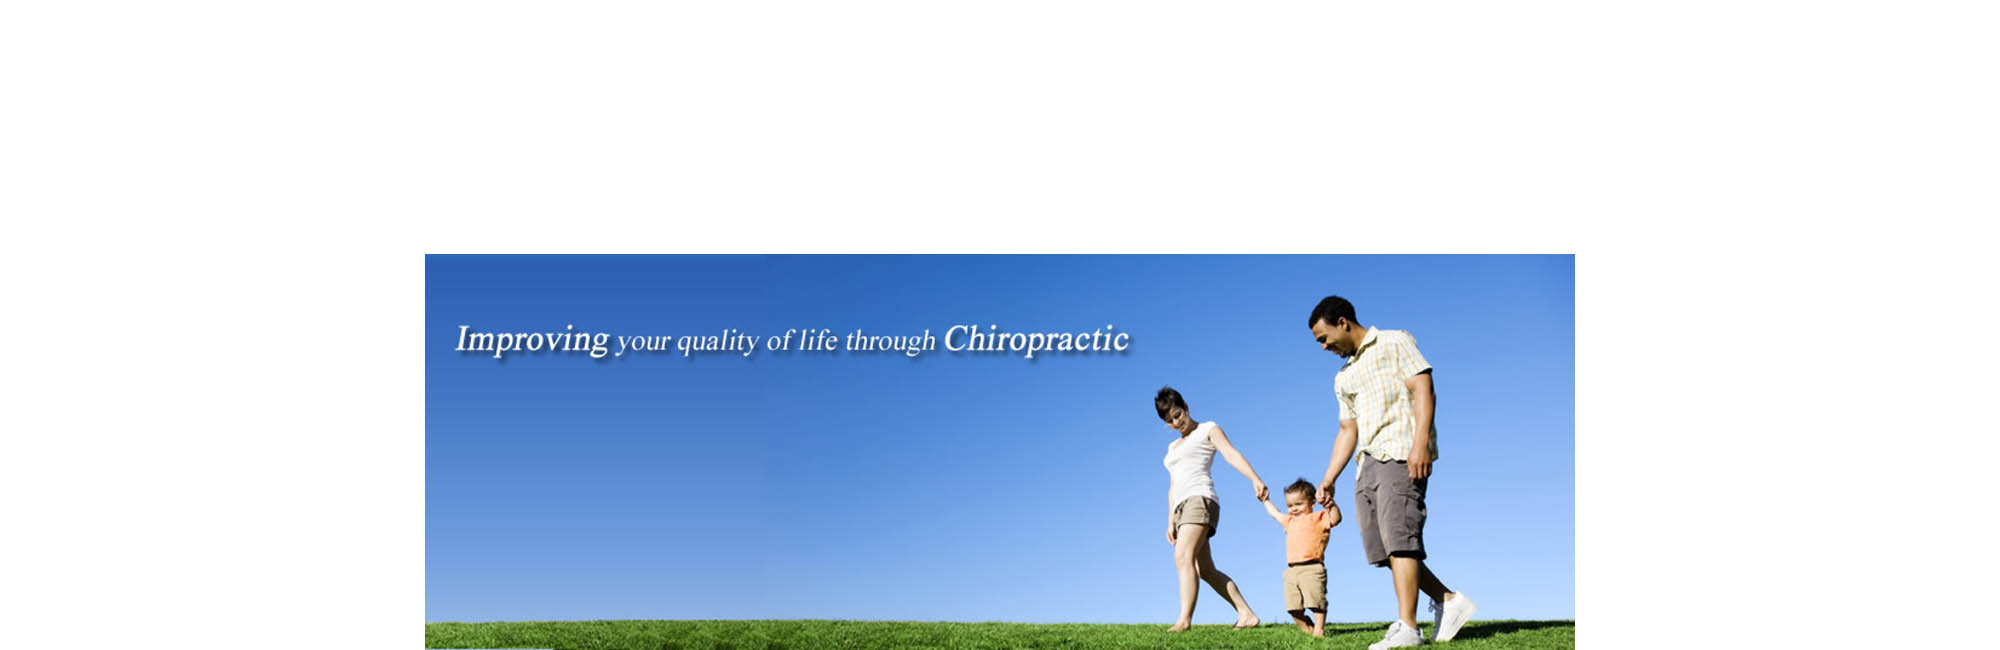 St. Paul Chiropractic & Natural Medicine Center